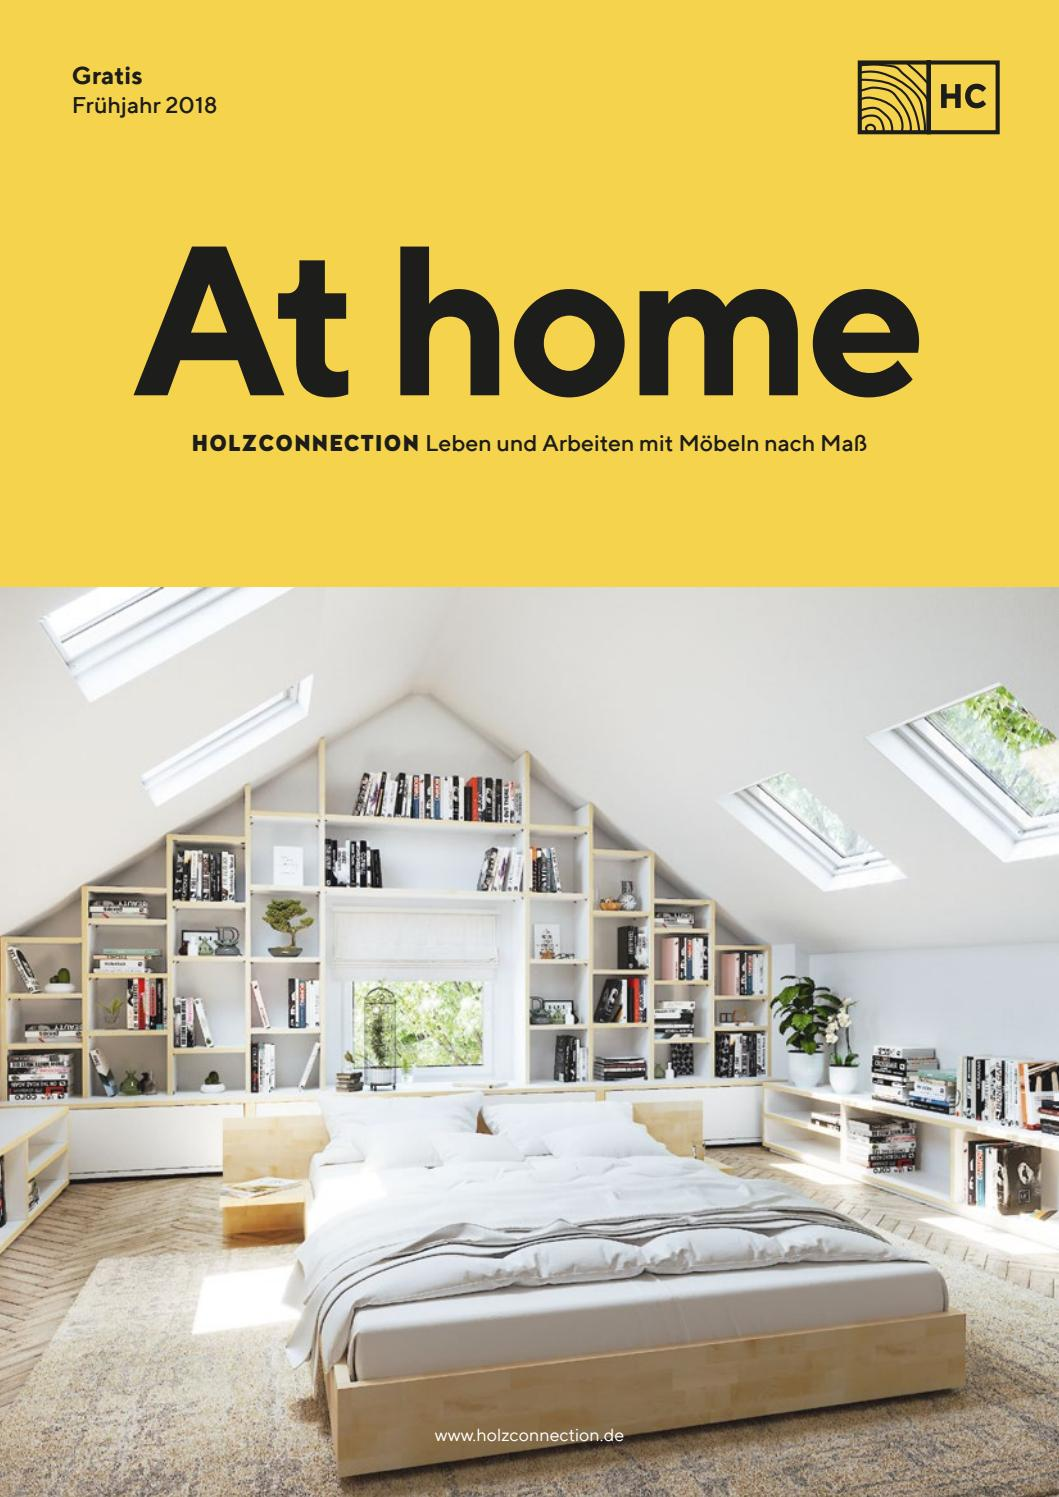 At home – Holzconnection Magazin by Holzconnection - issuu